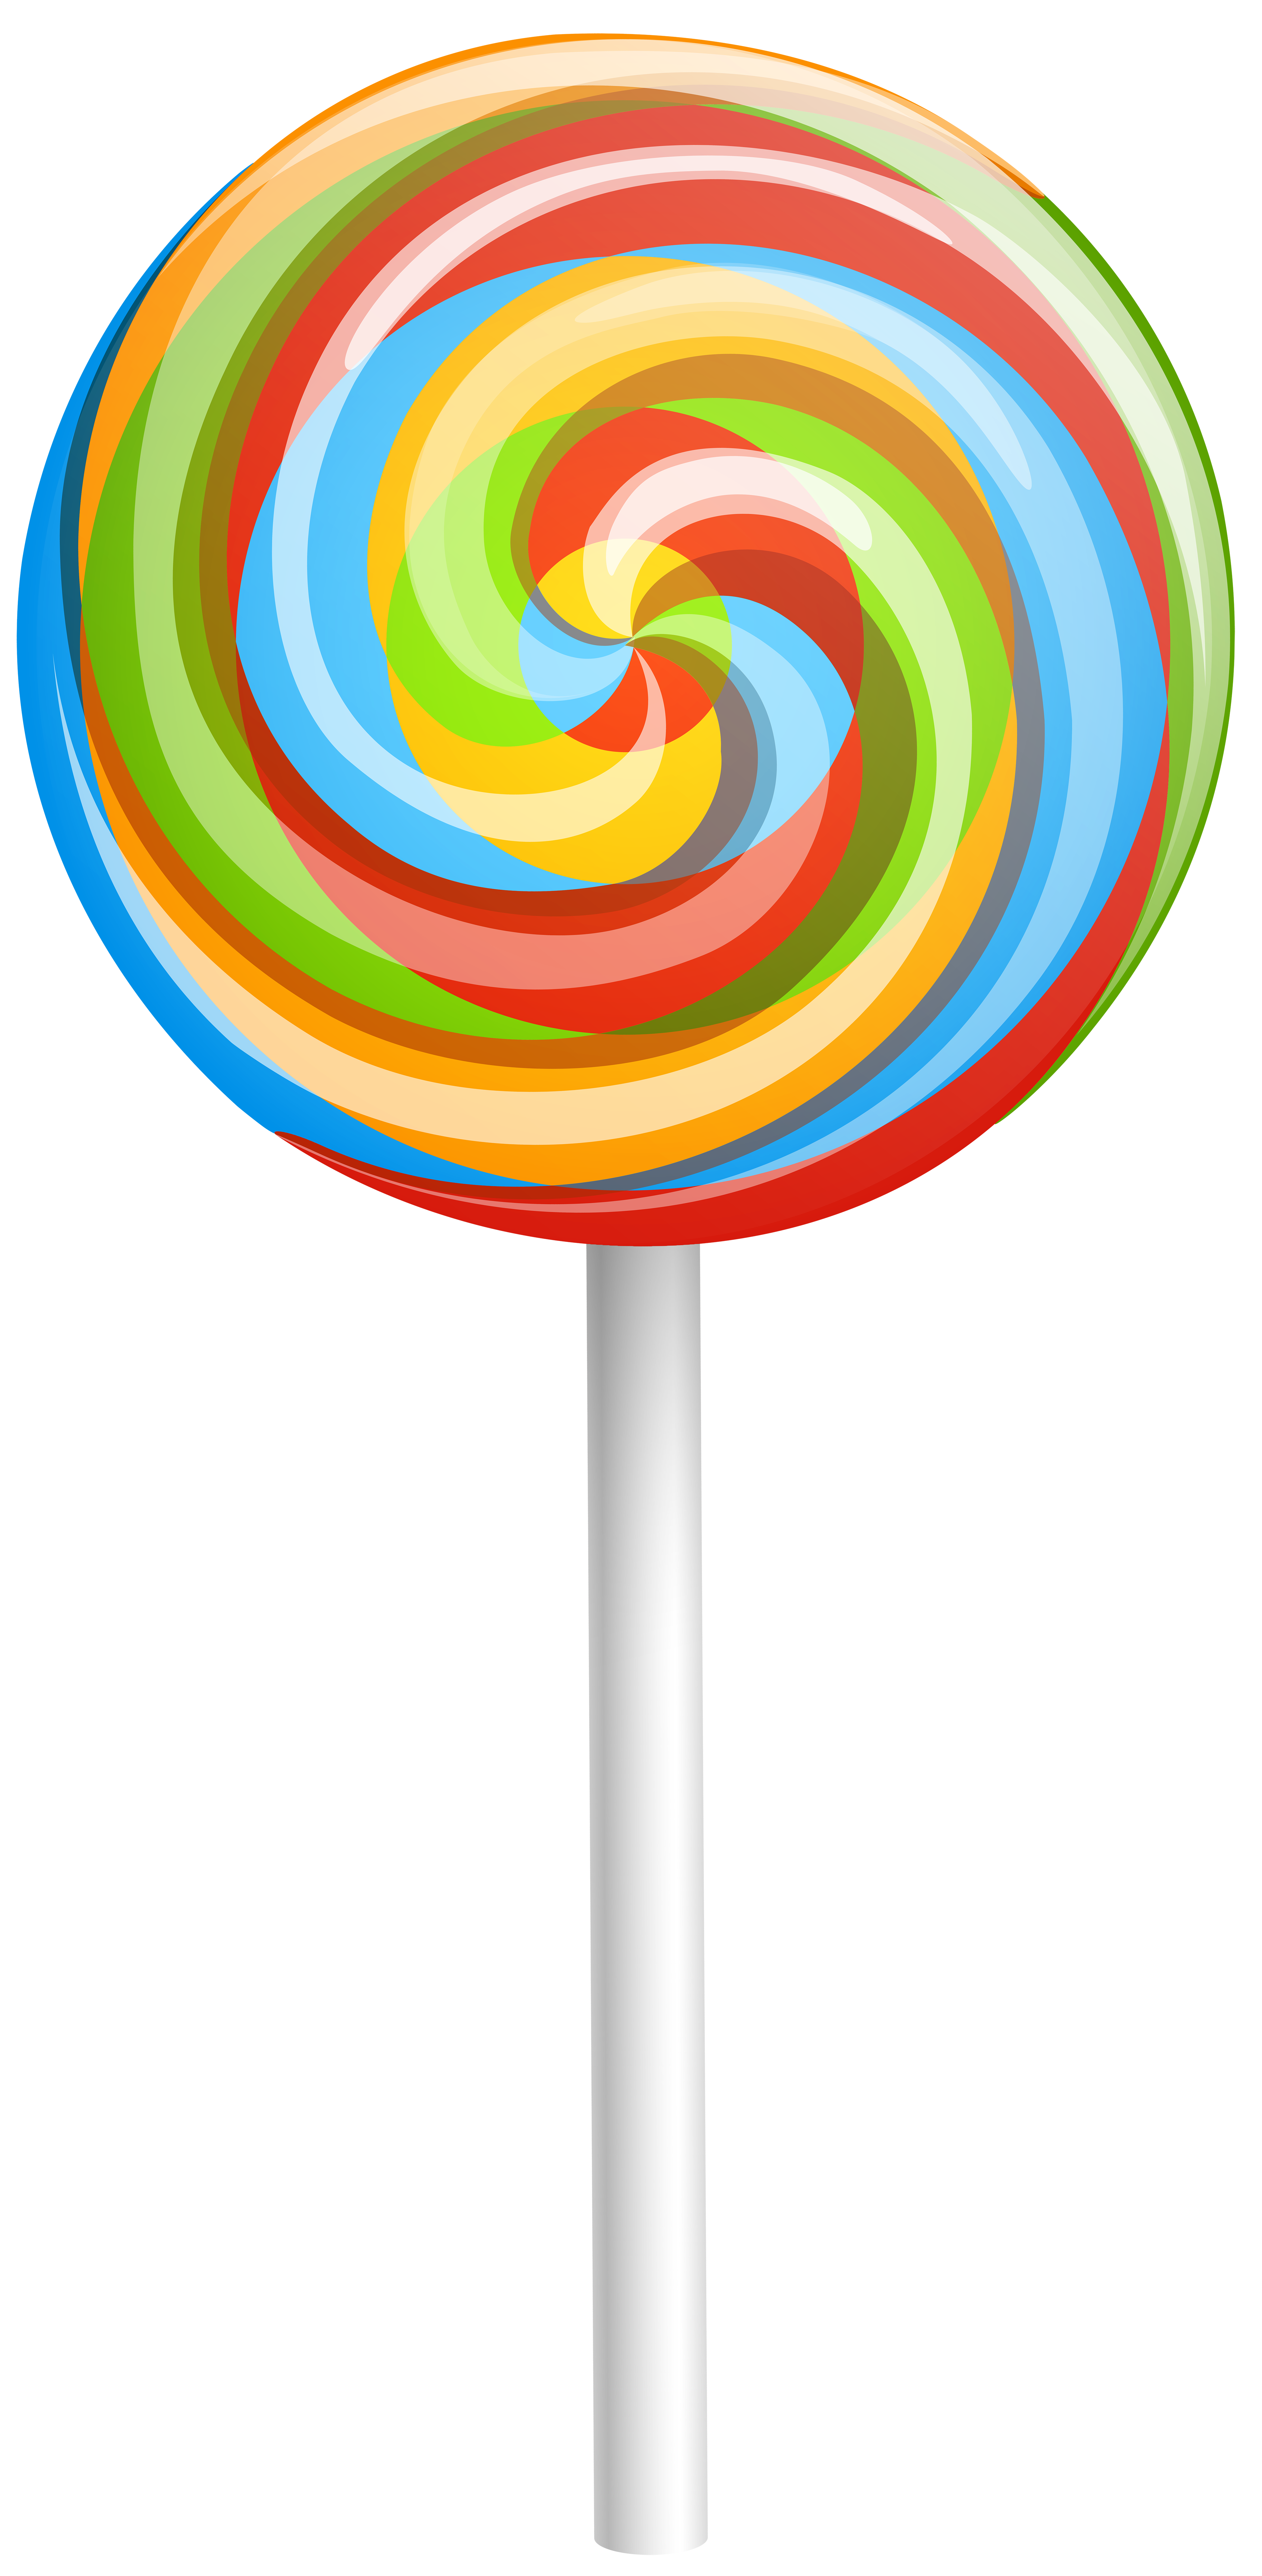 transparent lollipop mini rainbow